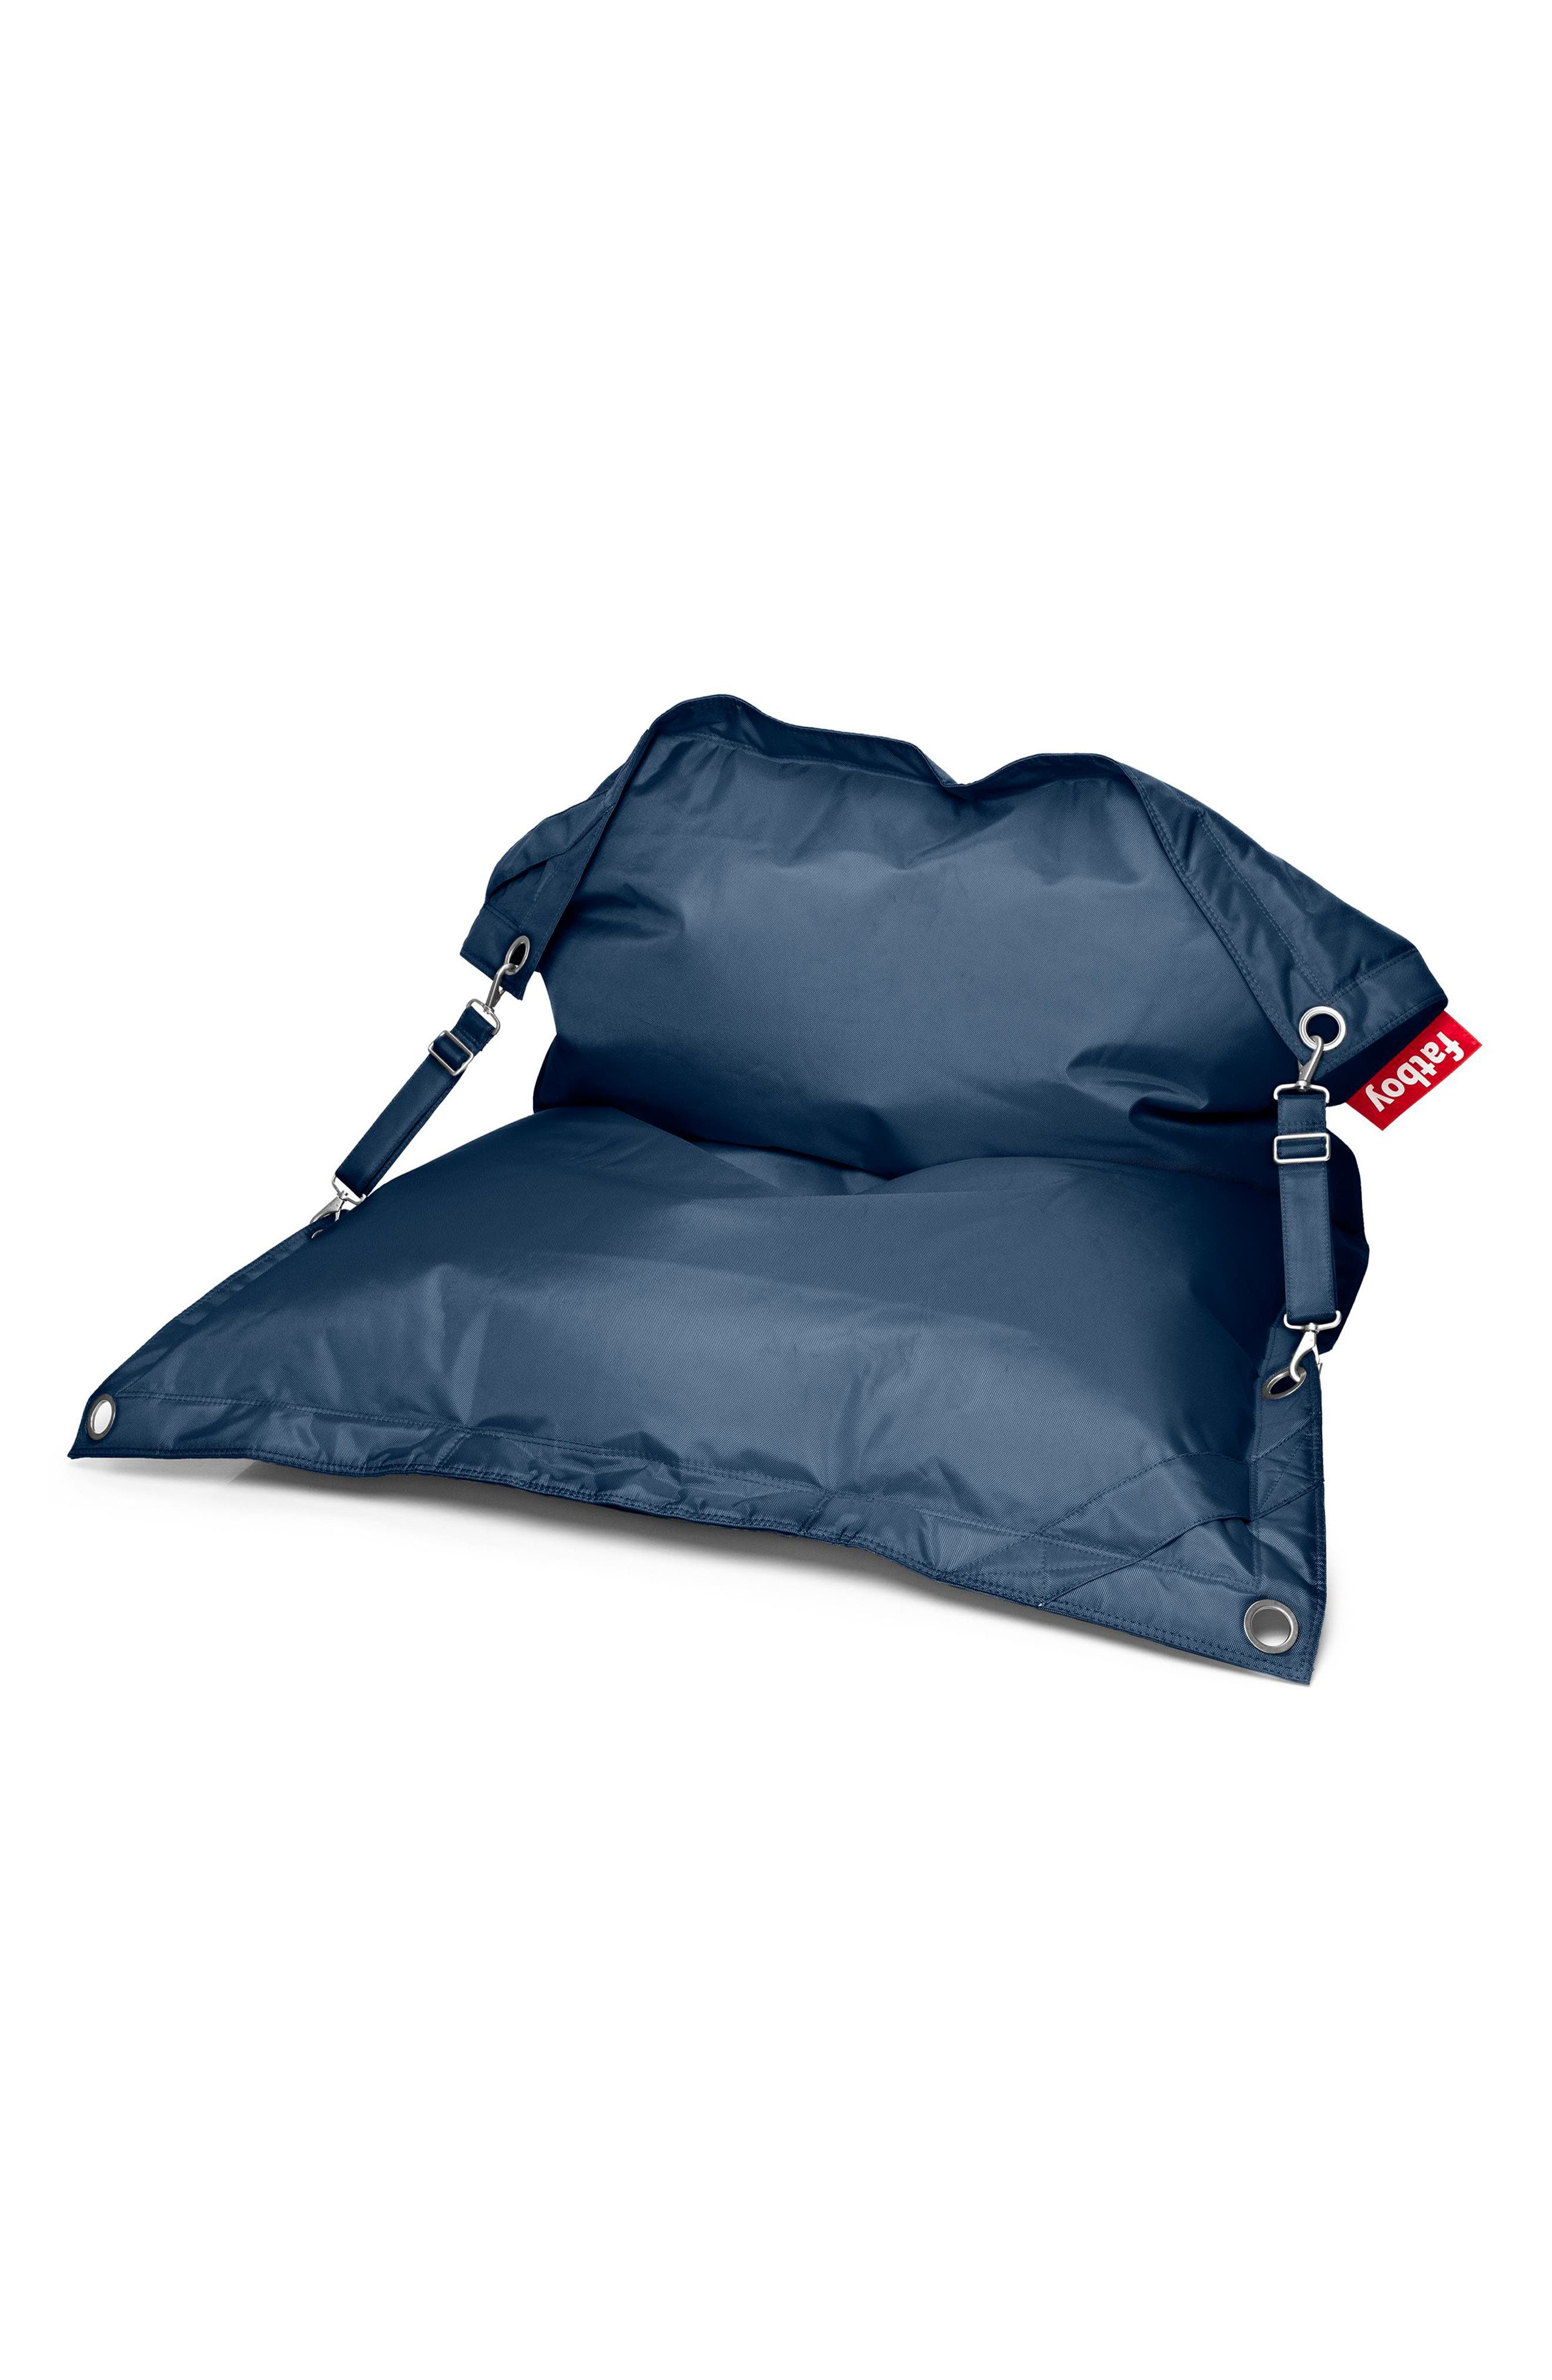 Buggle Up Beanbag Lounge Chair,                         Main,                         color, Dark Blue